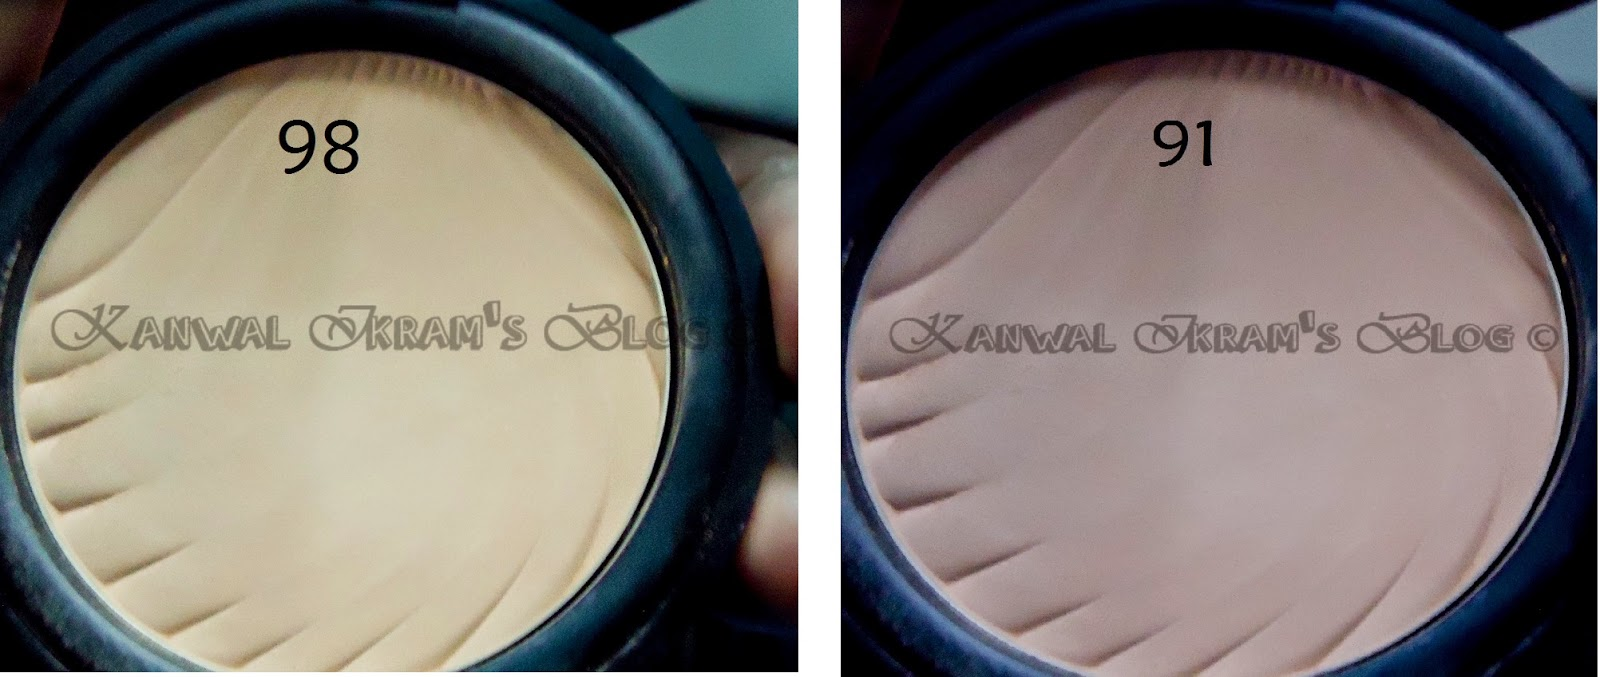 Flormar Compact Powder- shade 98 and 91